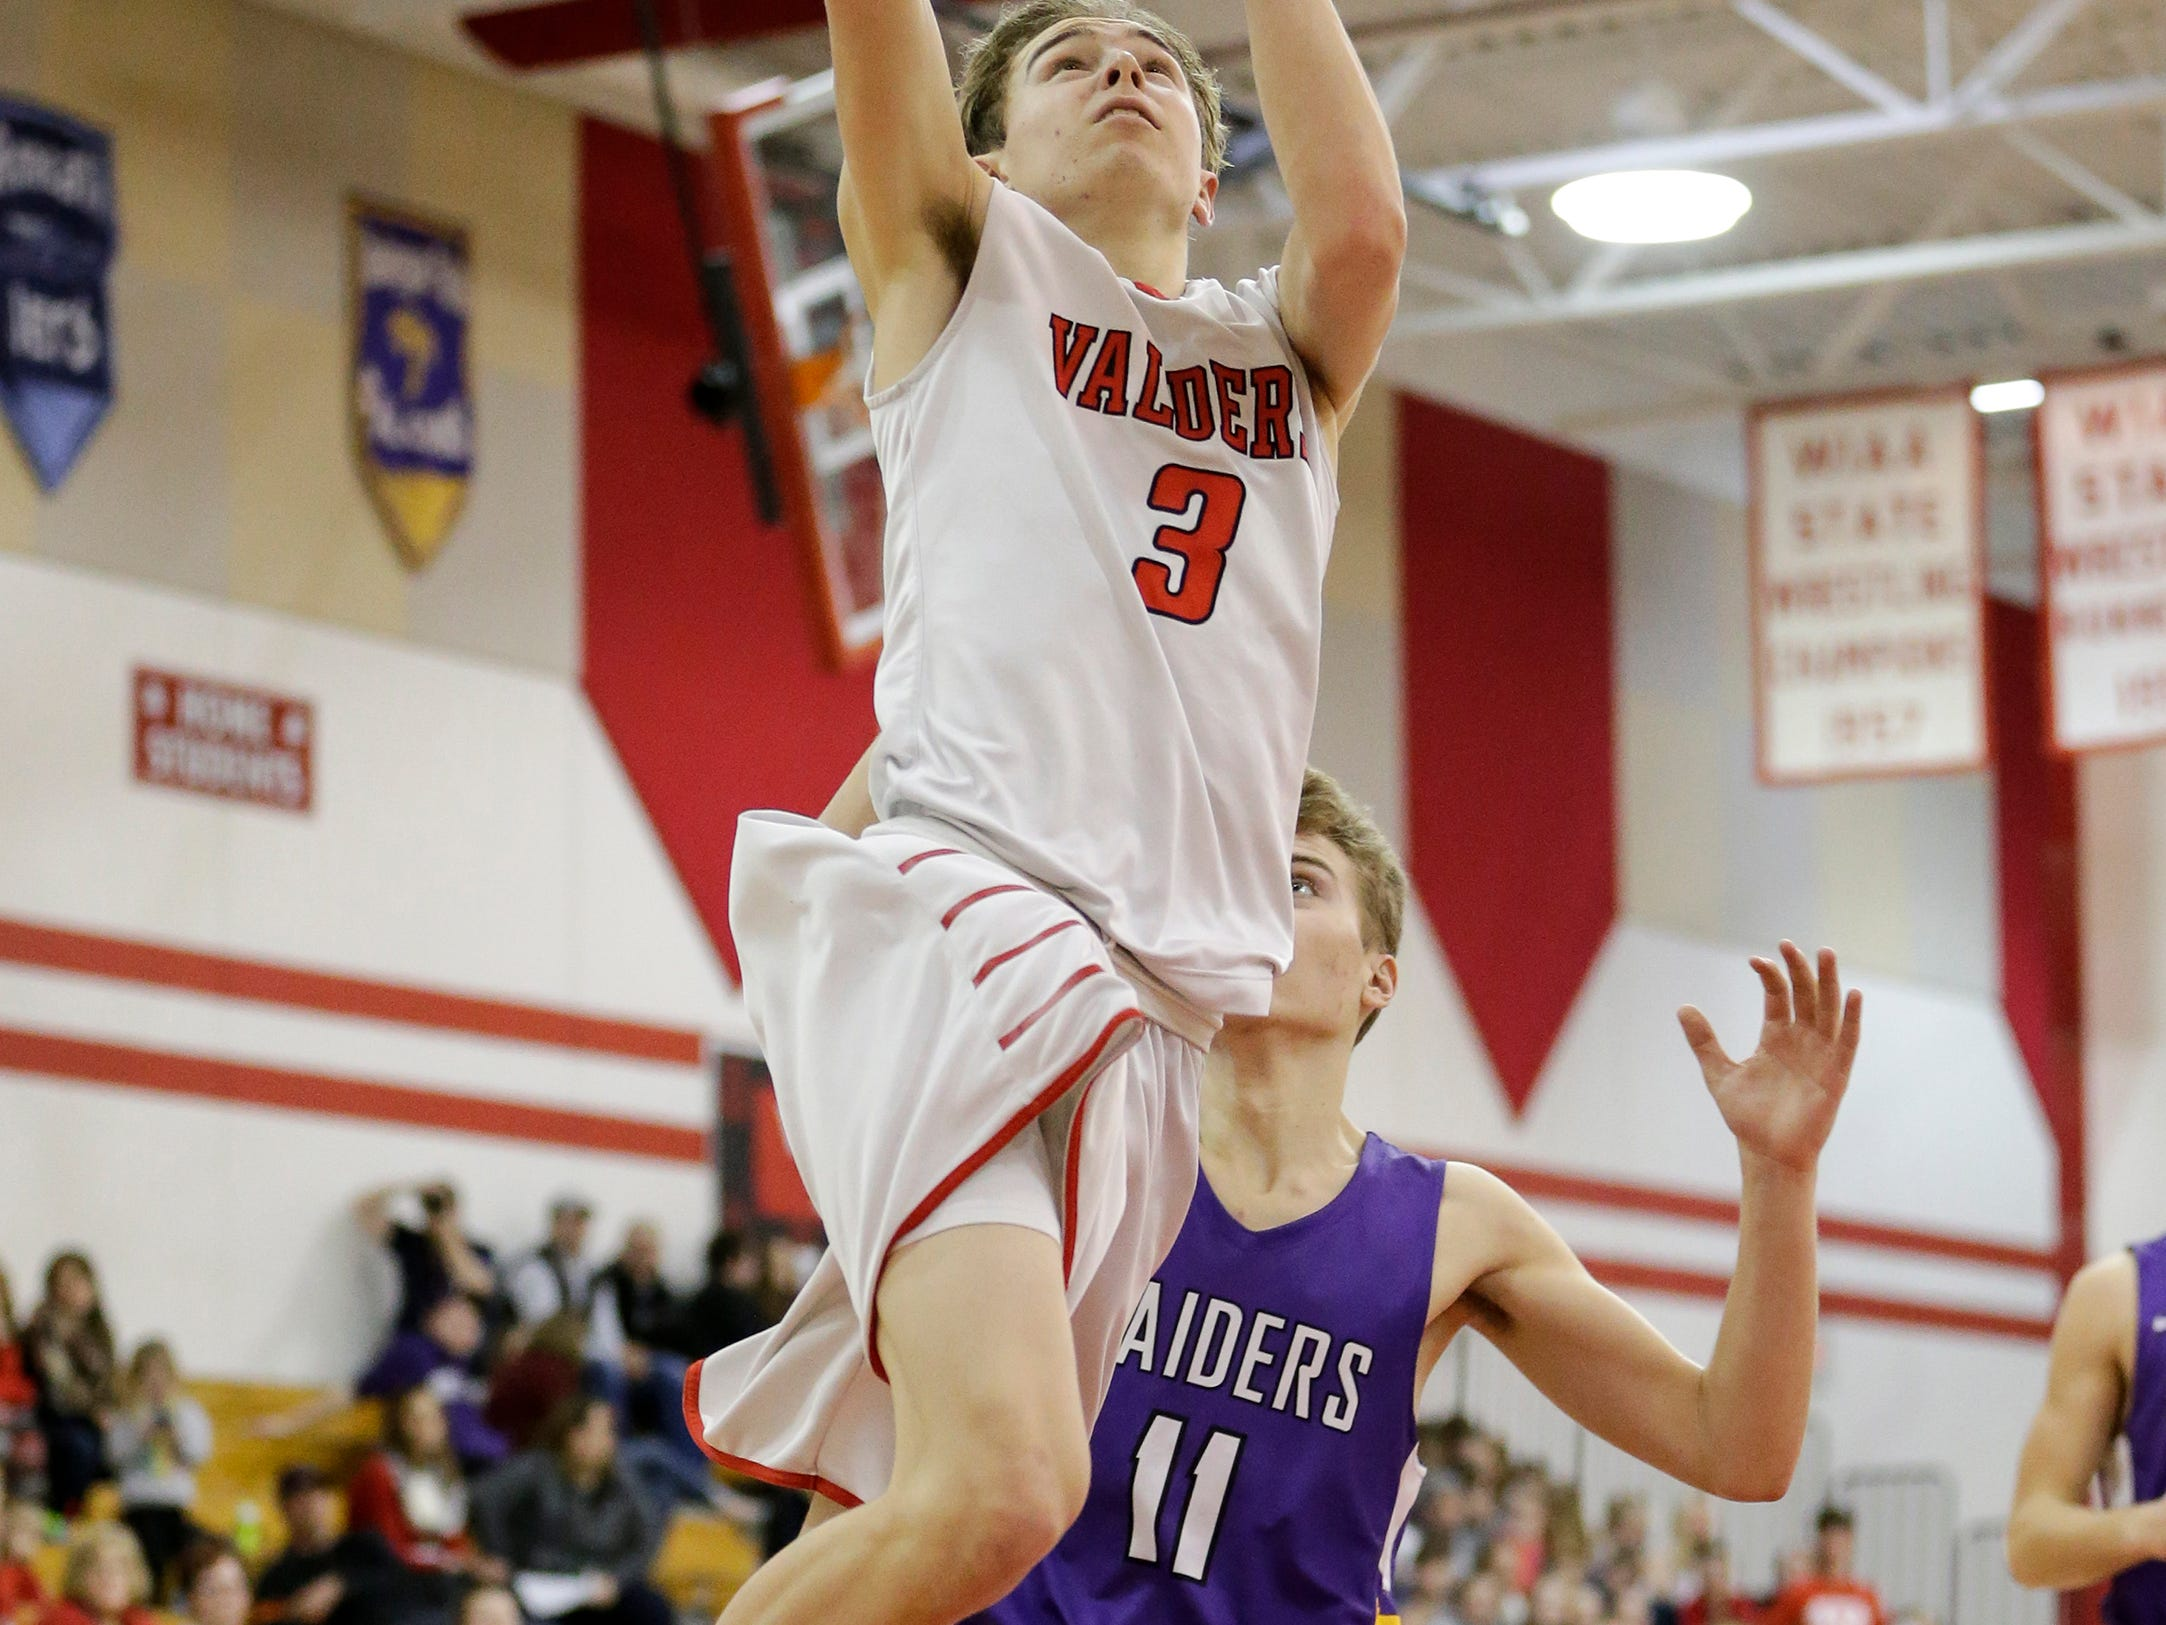 Valders' Matthew Meyers (3) drives for a layup against Two Rivers at Valders High School Thursday, January 24, 2019, in Valders, Wis. Joshua Clark/USA TODAY NETWORK-Wisconsin